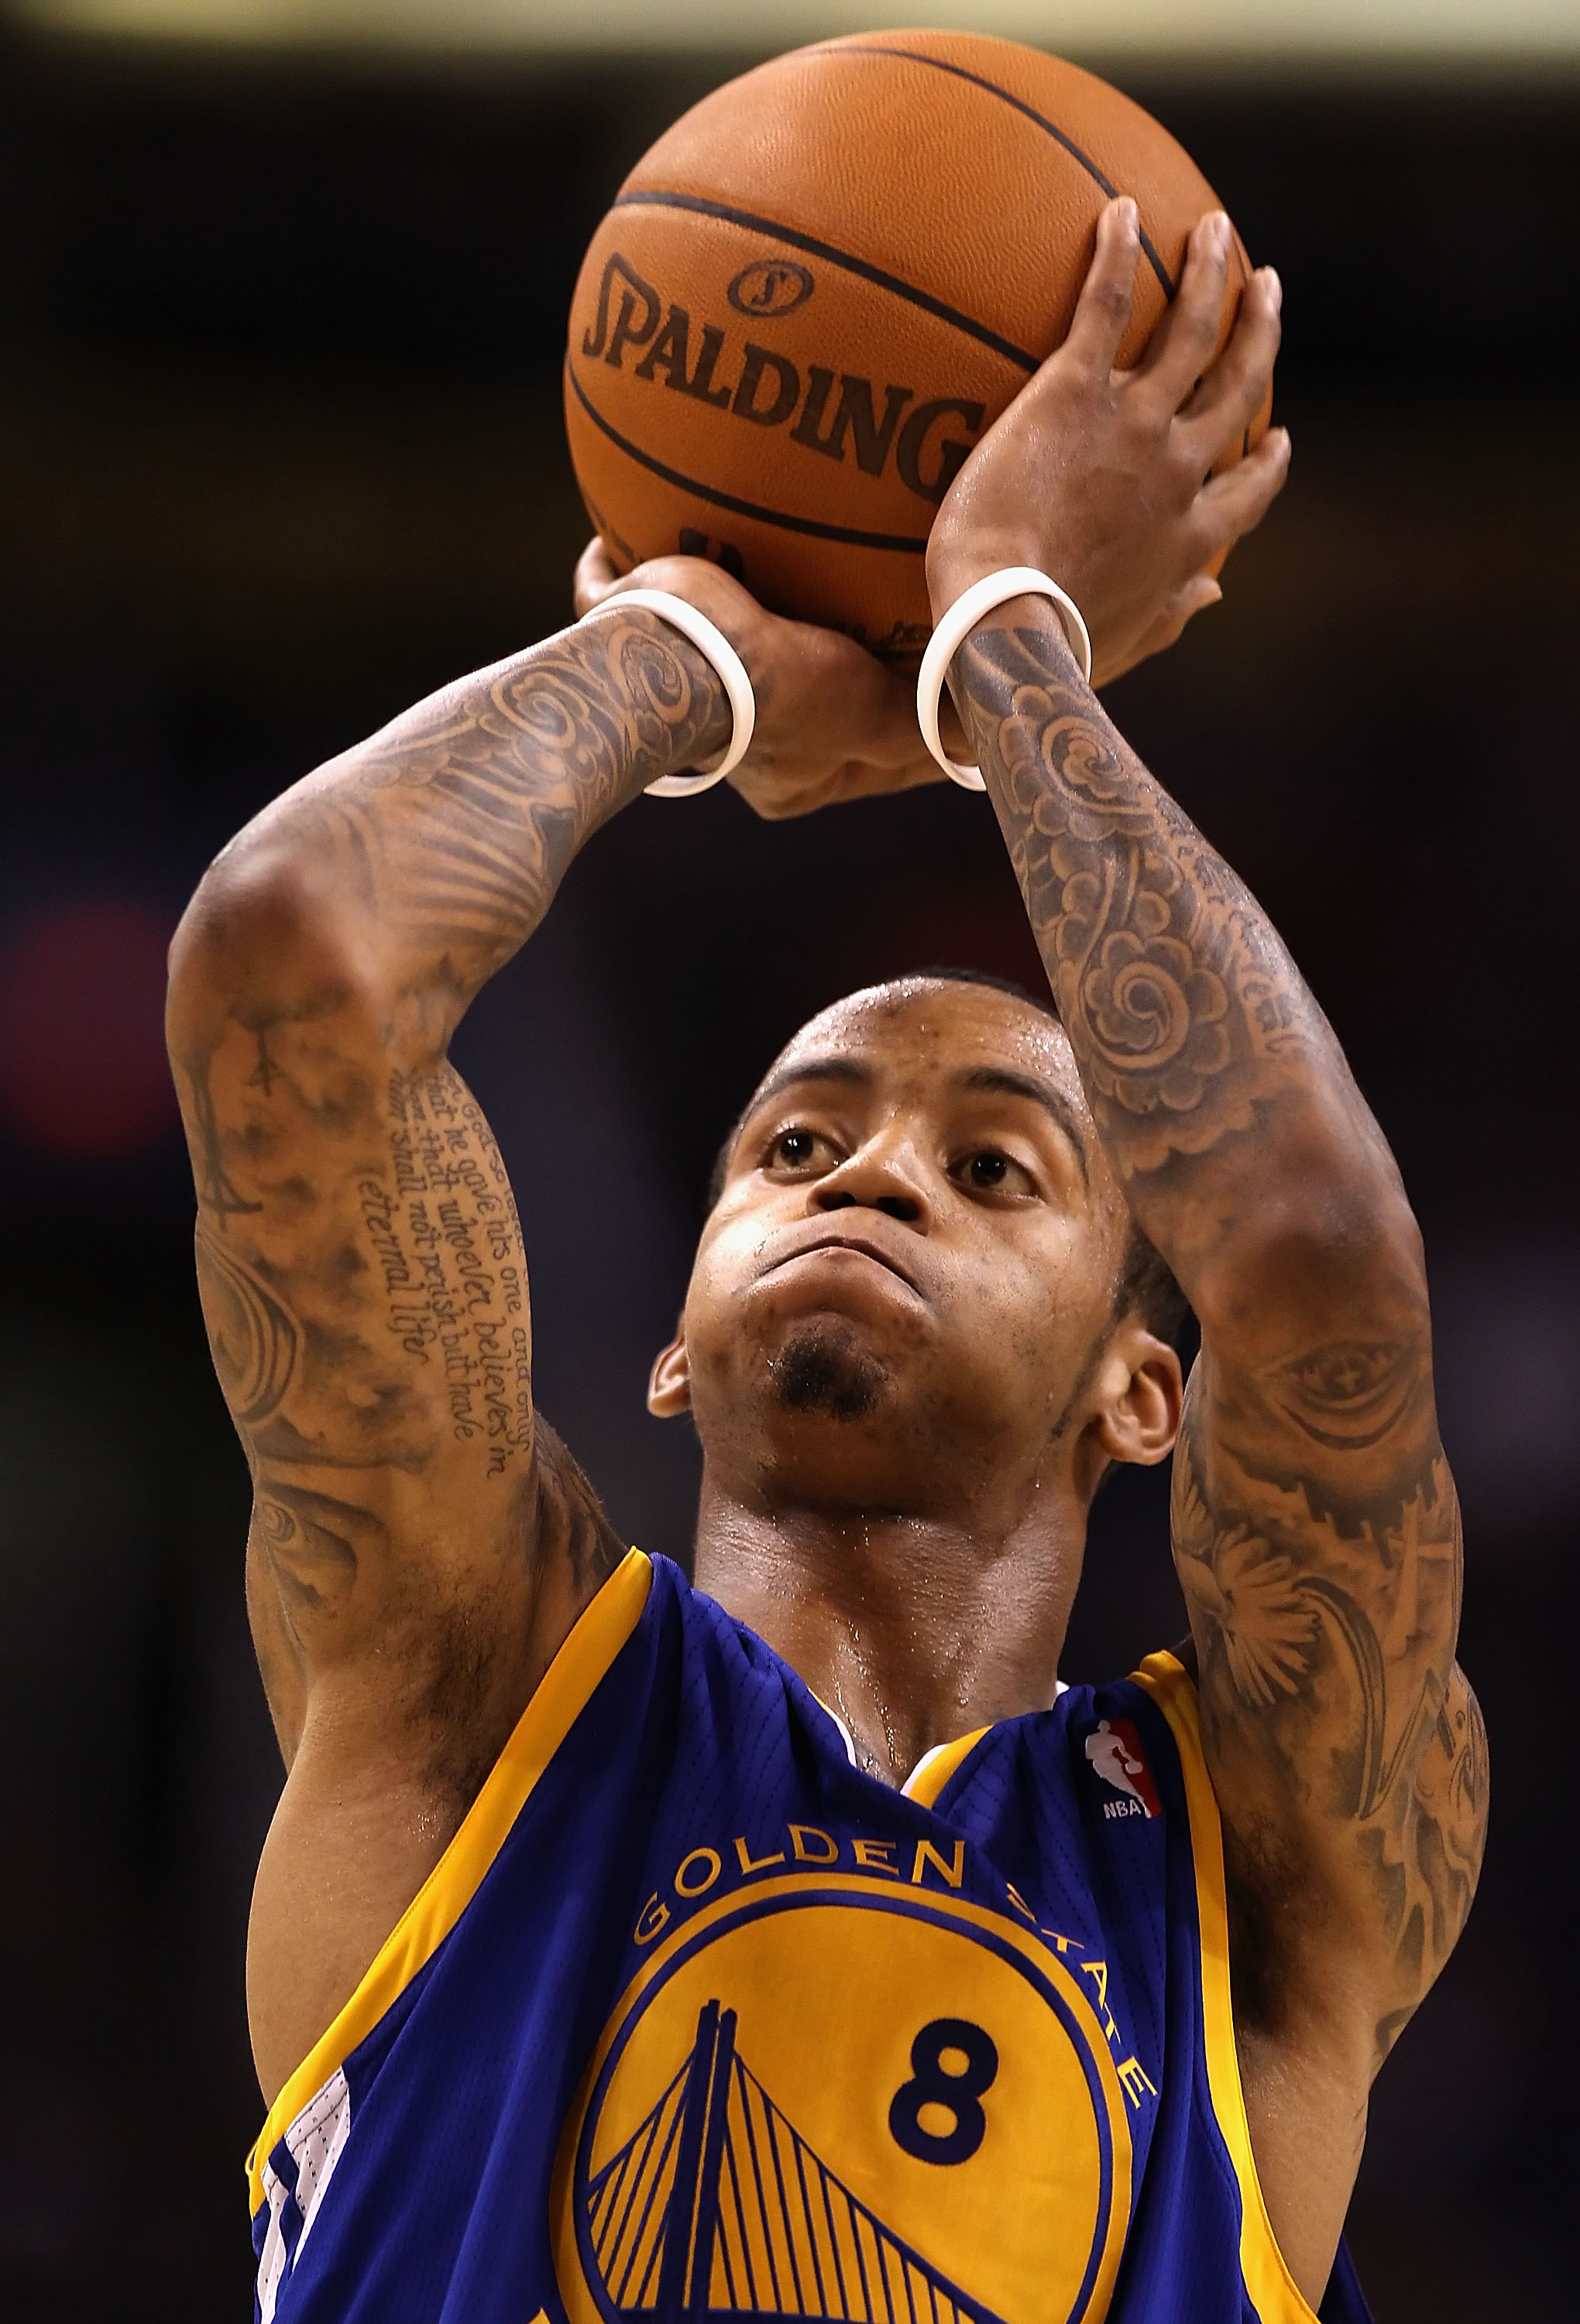 PHOENIX - OCTOBER 19:  Monta Ellis #8 of the Golden State Warriors shoots a free throw shot against the Phoenix Suns during the preseason NBA game at US Airways Center on October 19, 2010 in Phoenix, Arizona. NOTE TO USER: User expressly acknowledges and